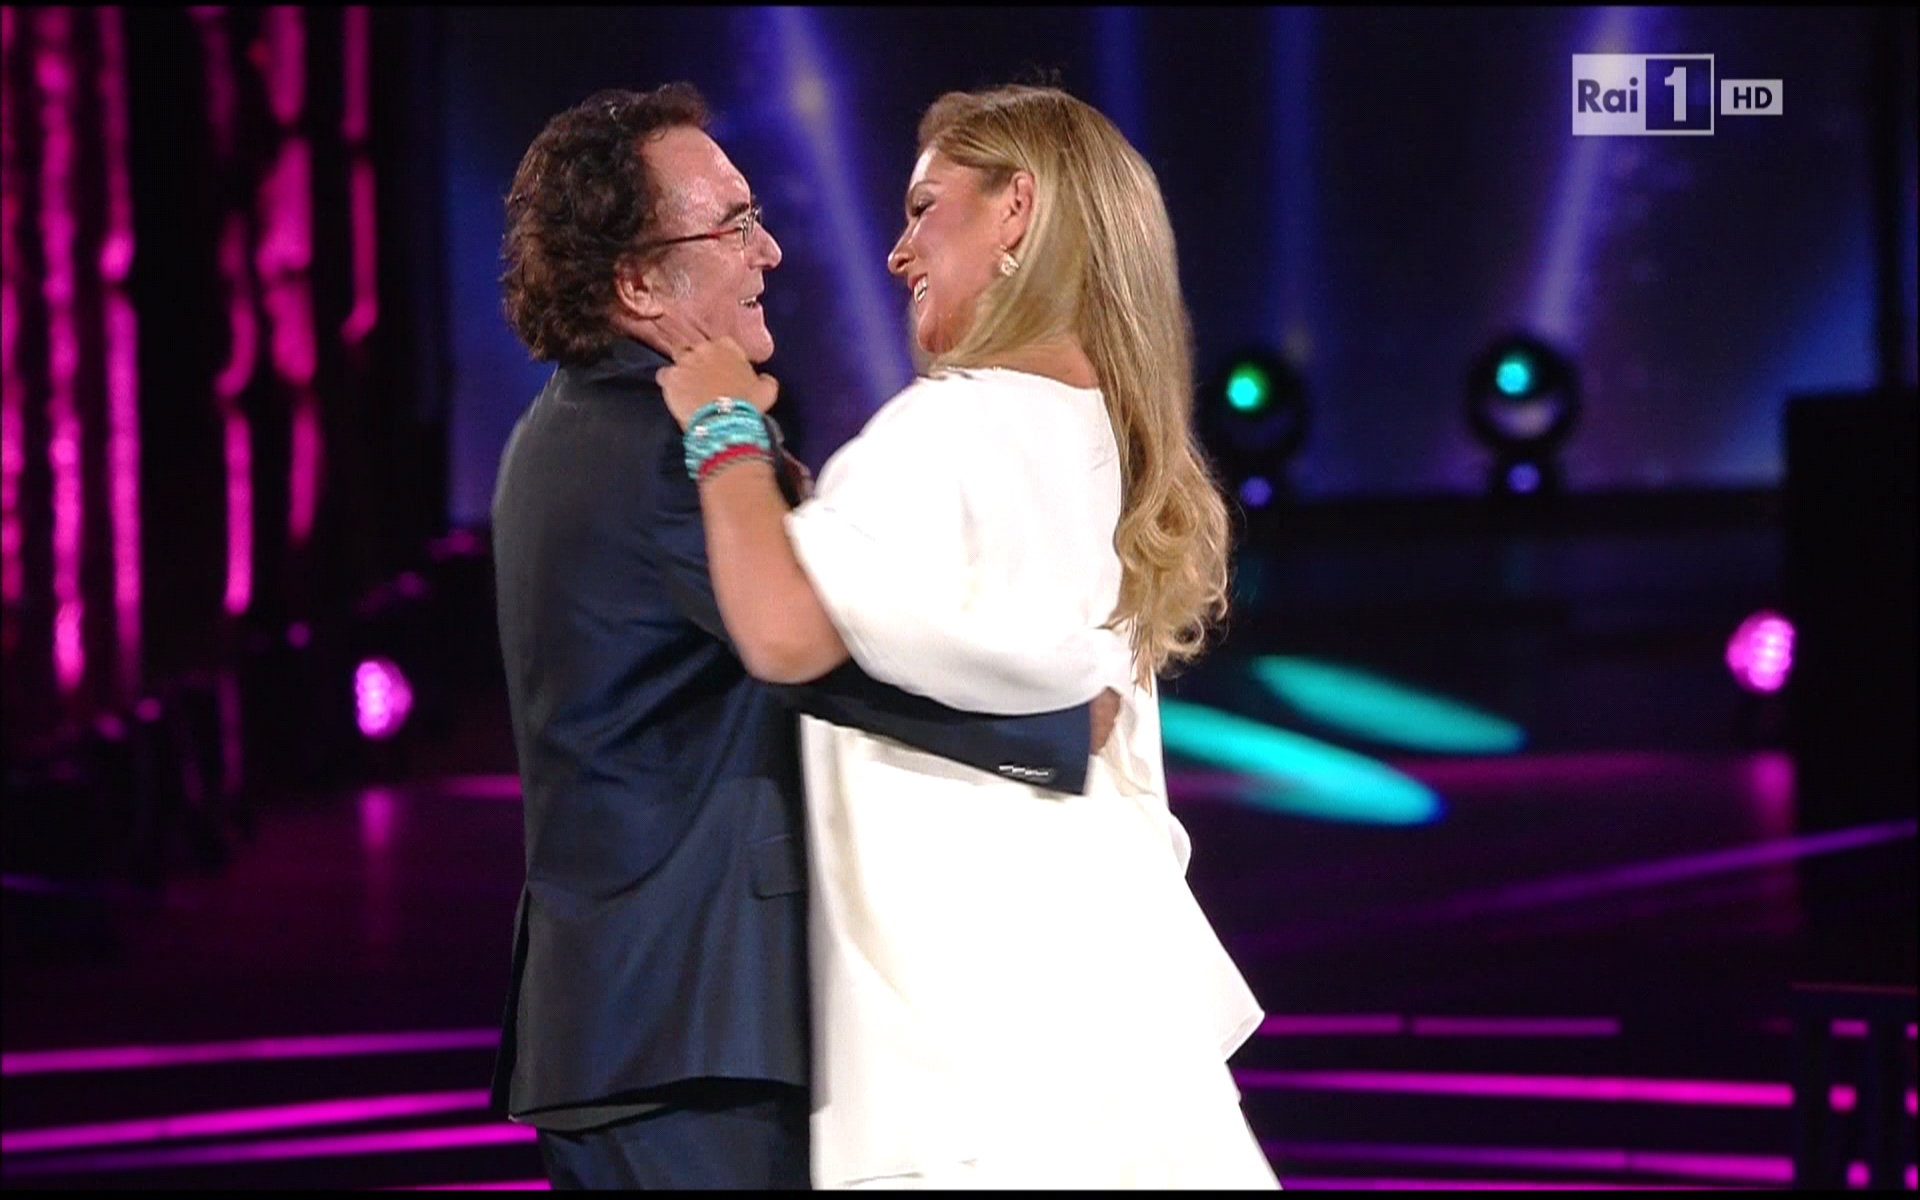 Romina power e al bano il ballo romantico solo apparenza for Al bano e romina power